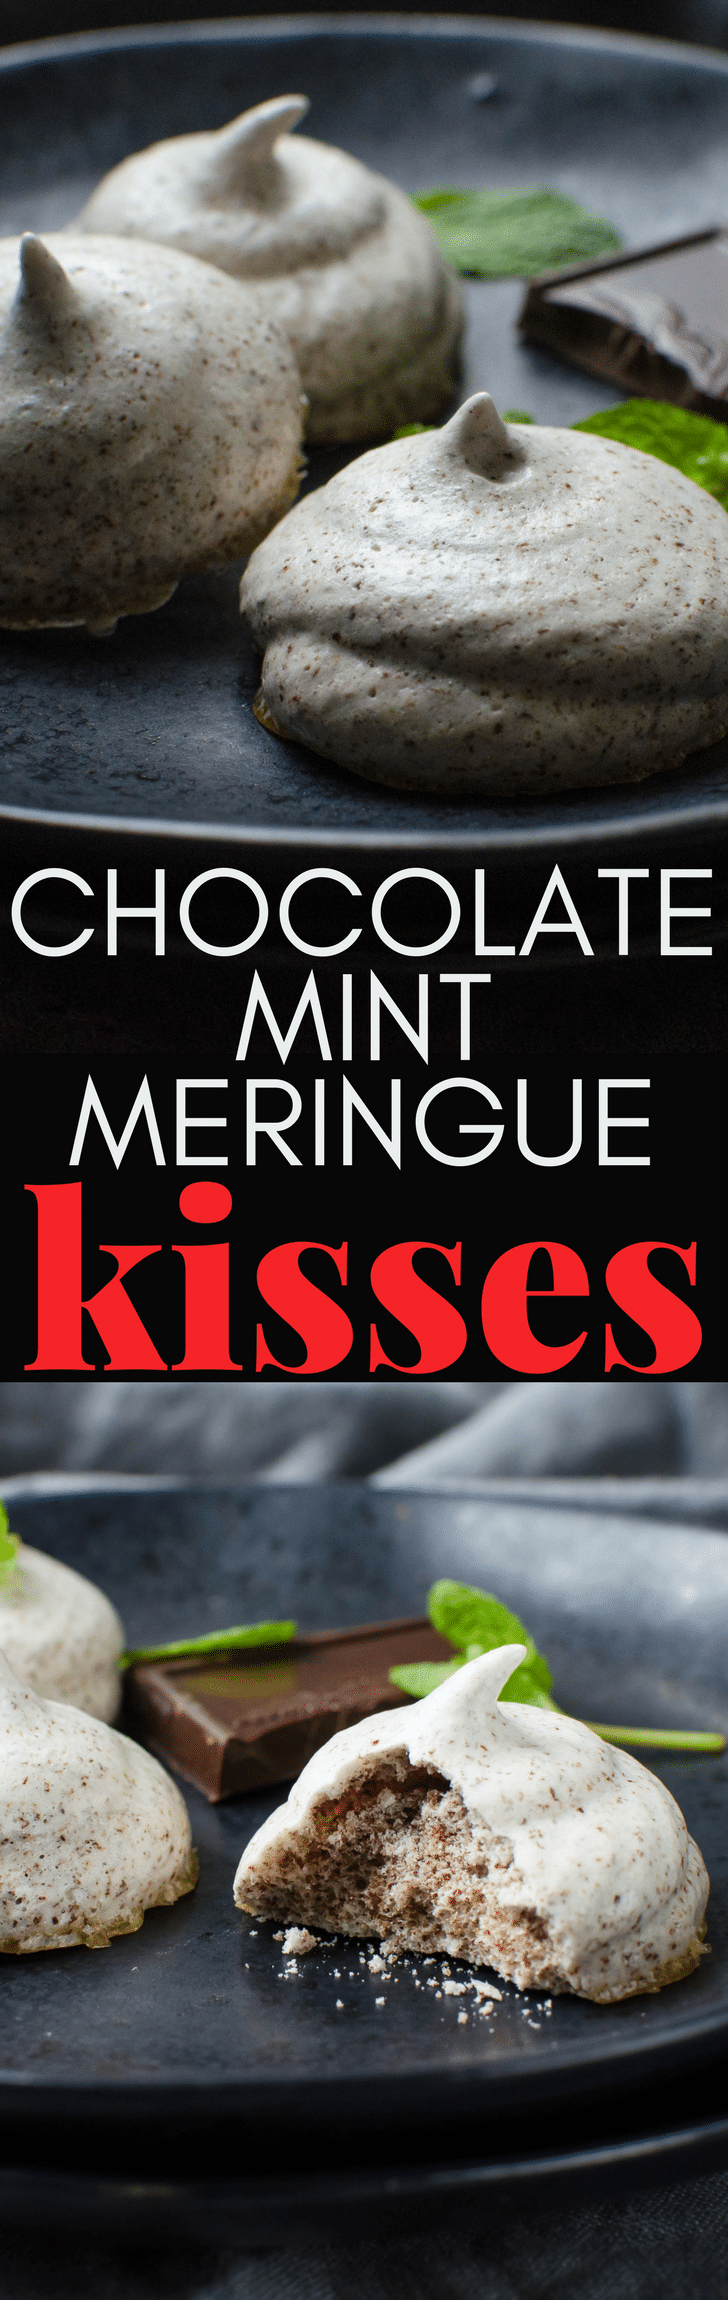 Looking for a guilt-free cookie recipe? These Chocolate Mint Meringue Kisses are 100 calories for 5! Flecked with dark chocolate and a hint of mint, these crispy treats are delicious. #meringues #cookies #guiltfreecookies #guiltfreesnack #eggwhites #meringue #chocolate #mint #chocolatemint #lowcaloriecookie #lowcaloriesnack #valentinescookies #valentinesday #valentine #christmasdessert #newyearsevebites #chocolatemintcookie